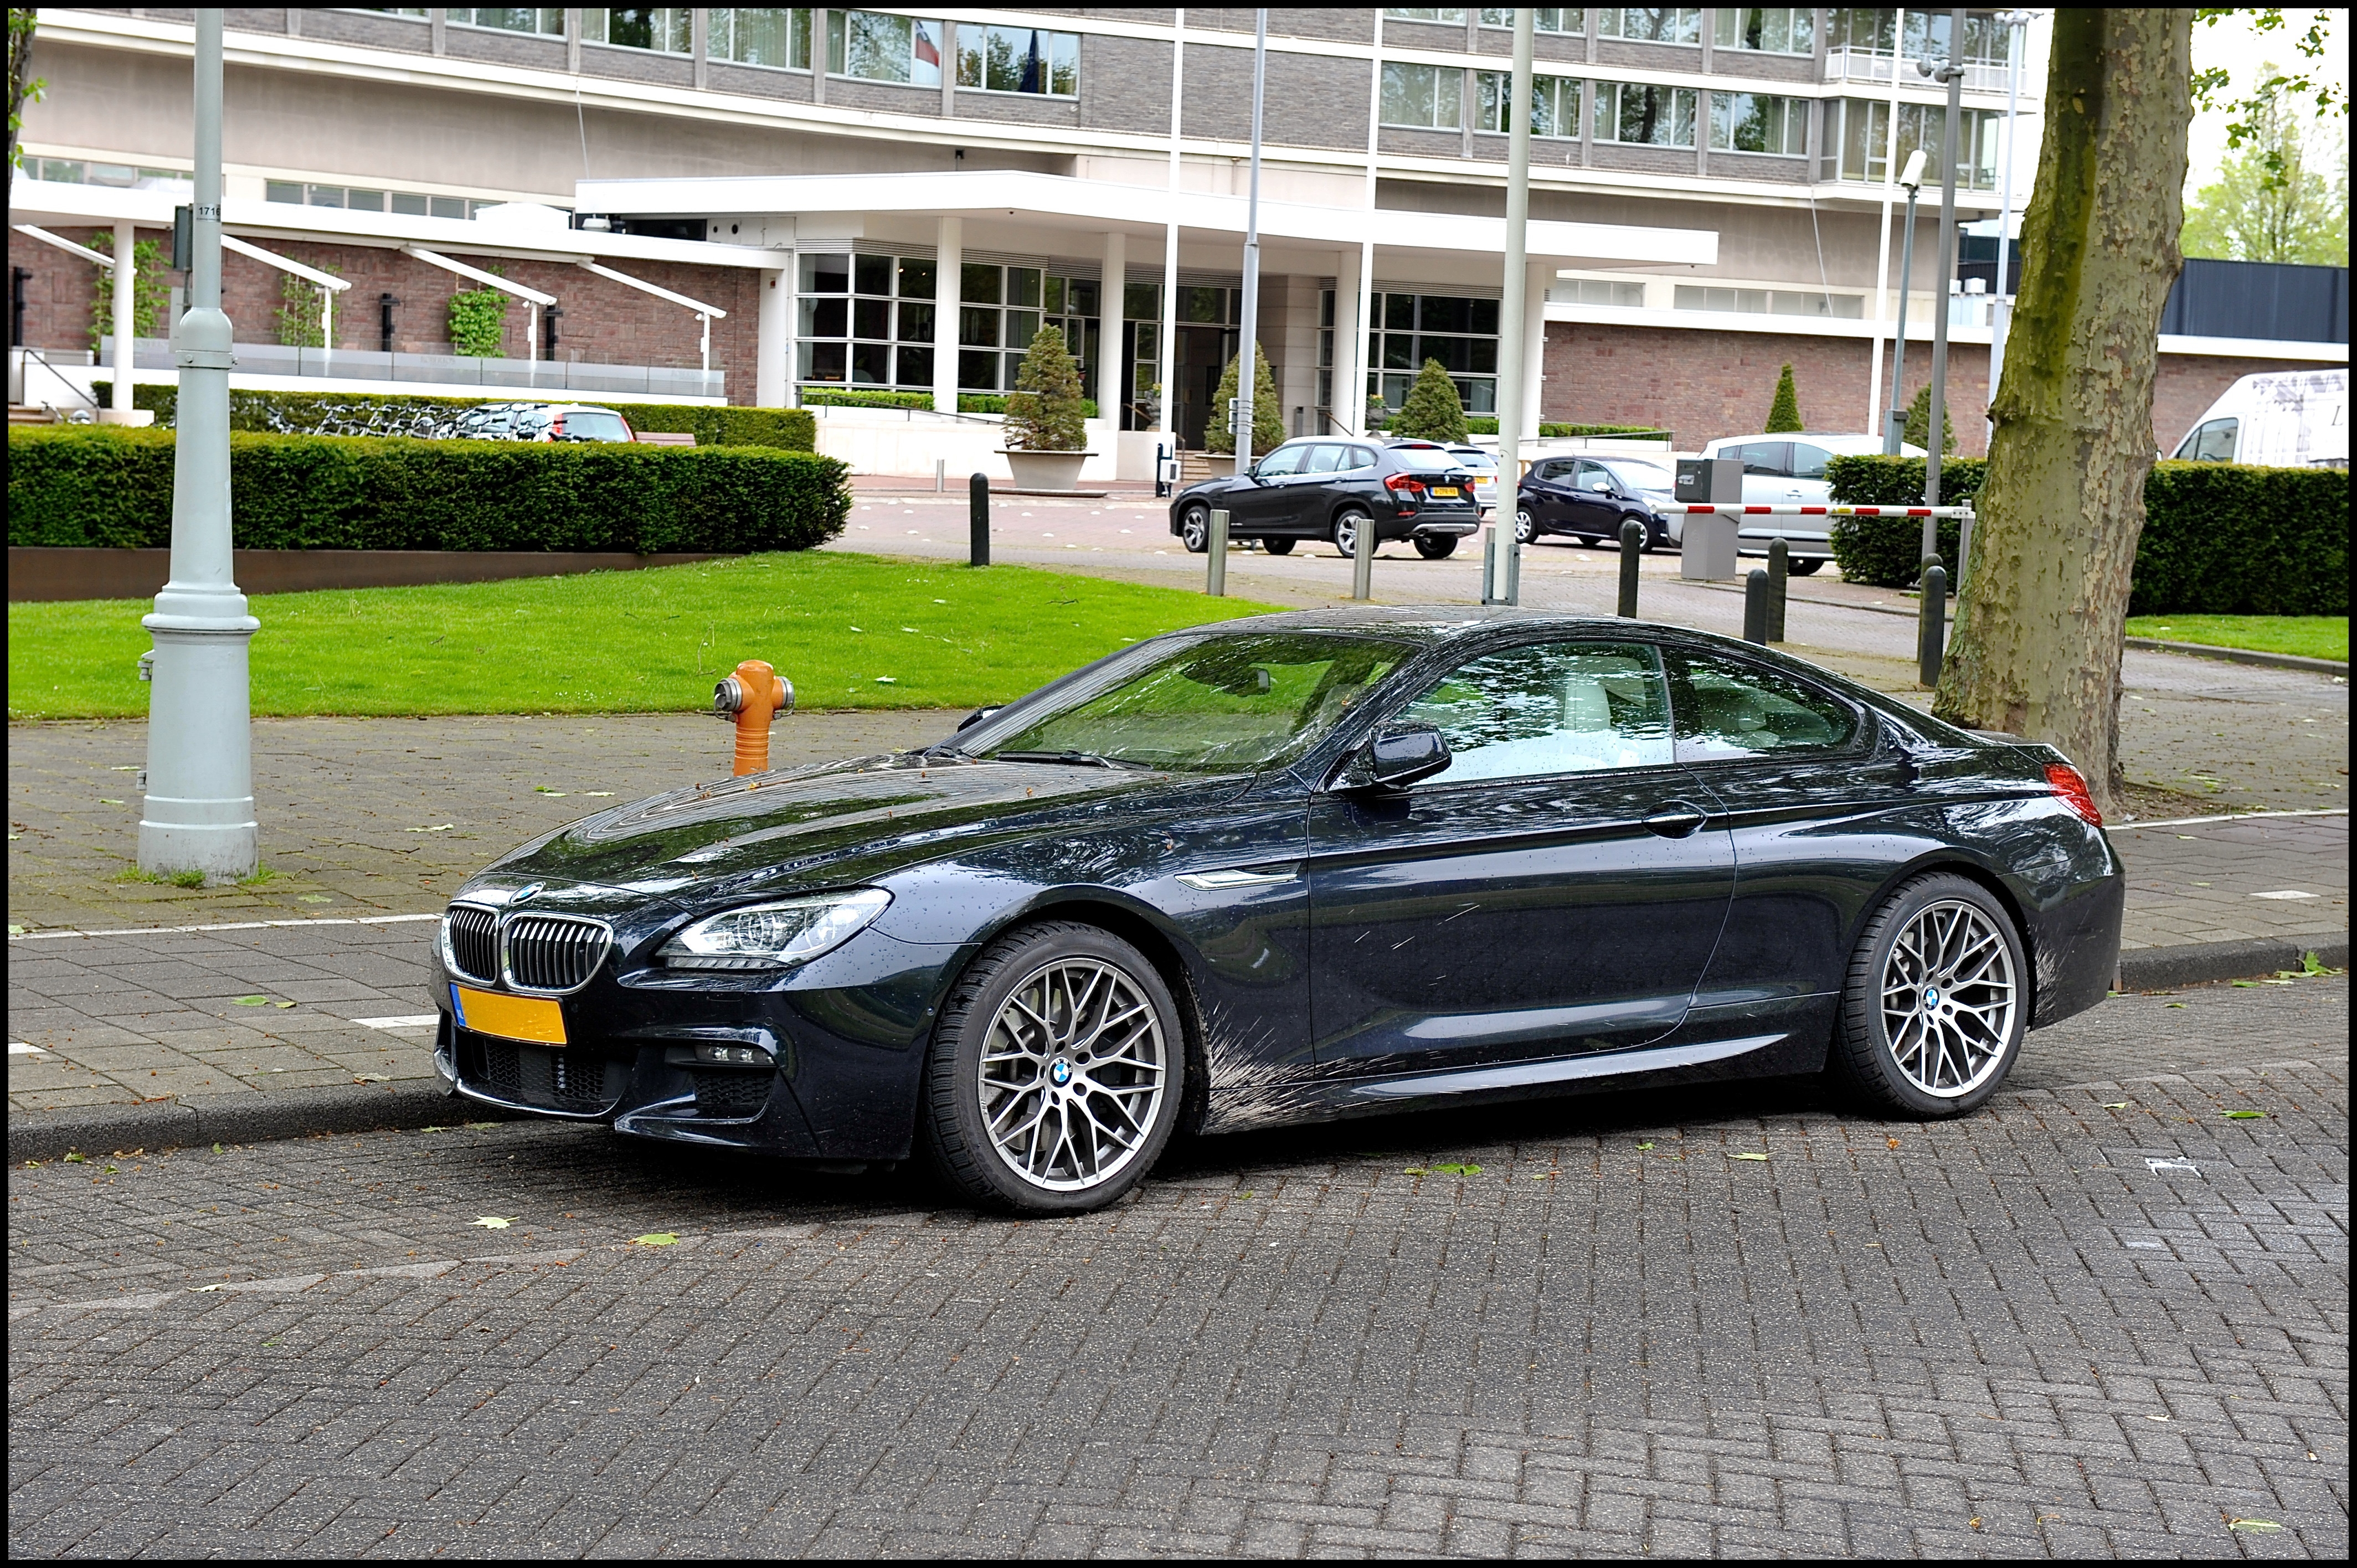 Bmw Contact Number Unique File Bmw 6c Wikimedia Mons Bmw Contact Number Unique File Bmw